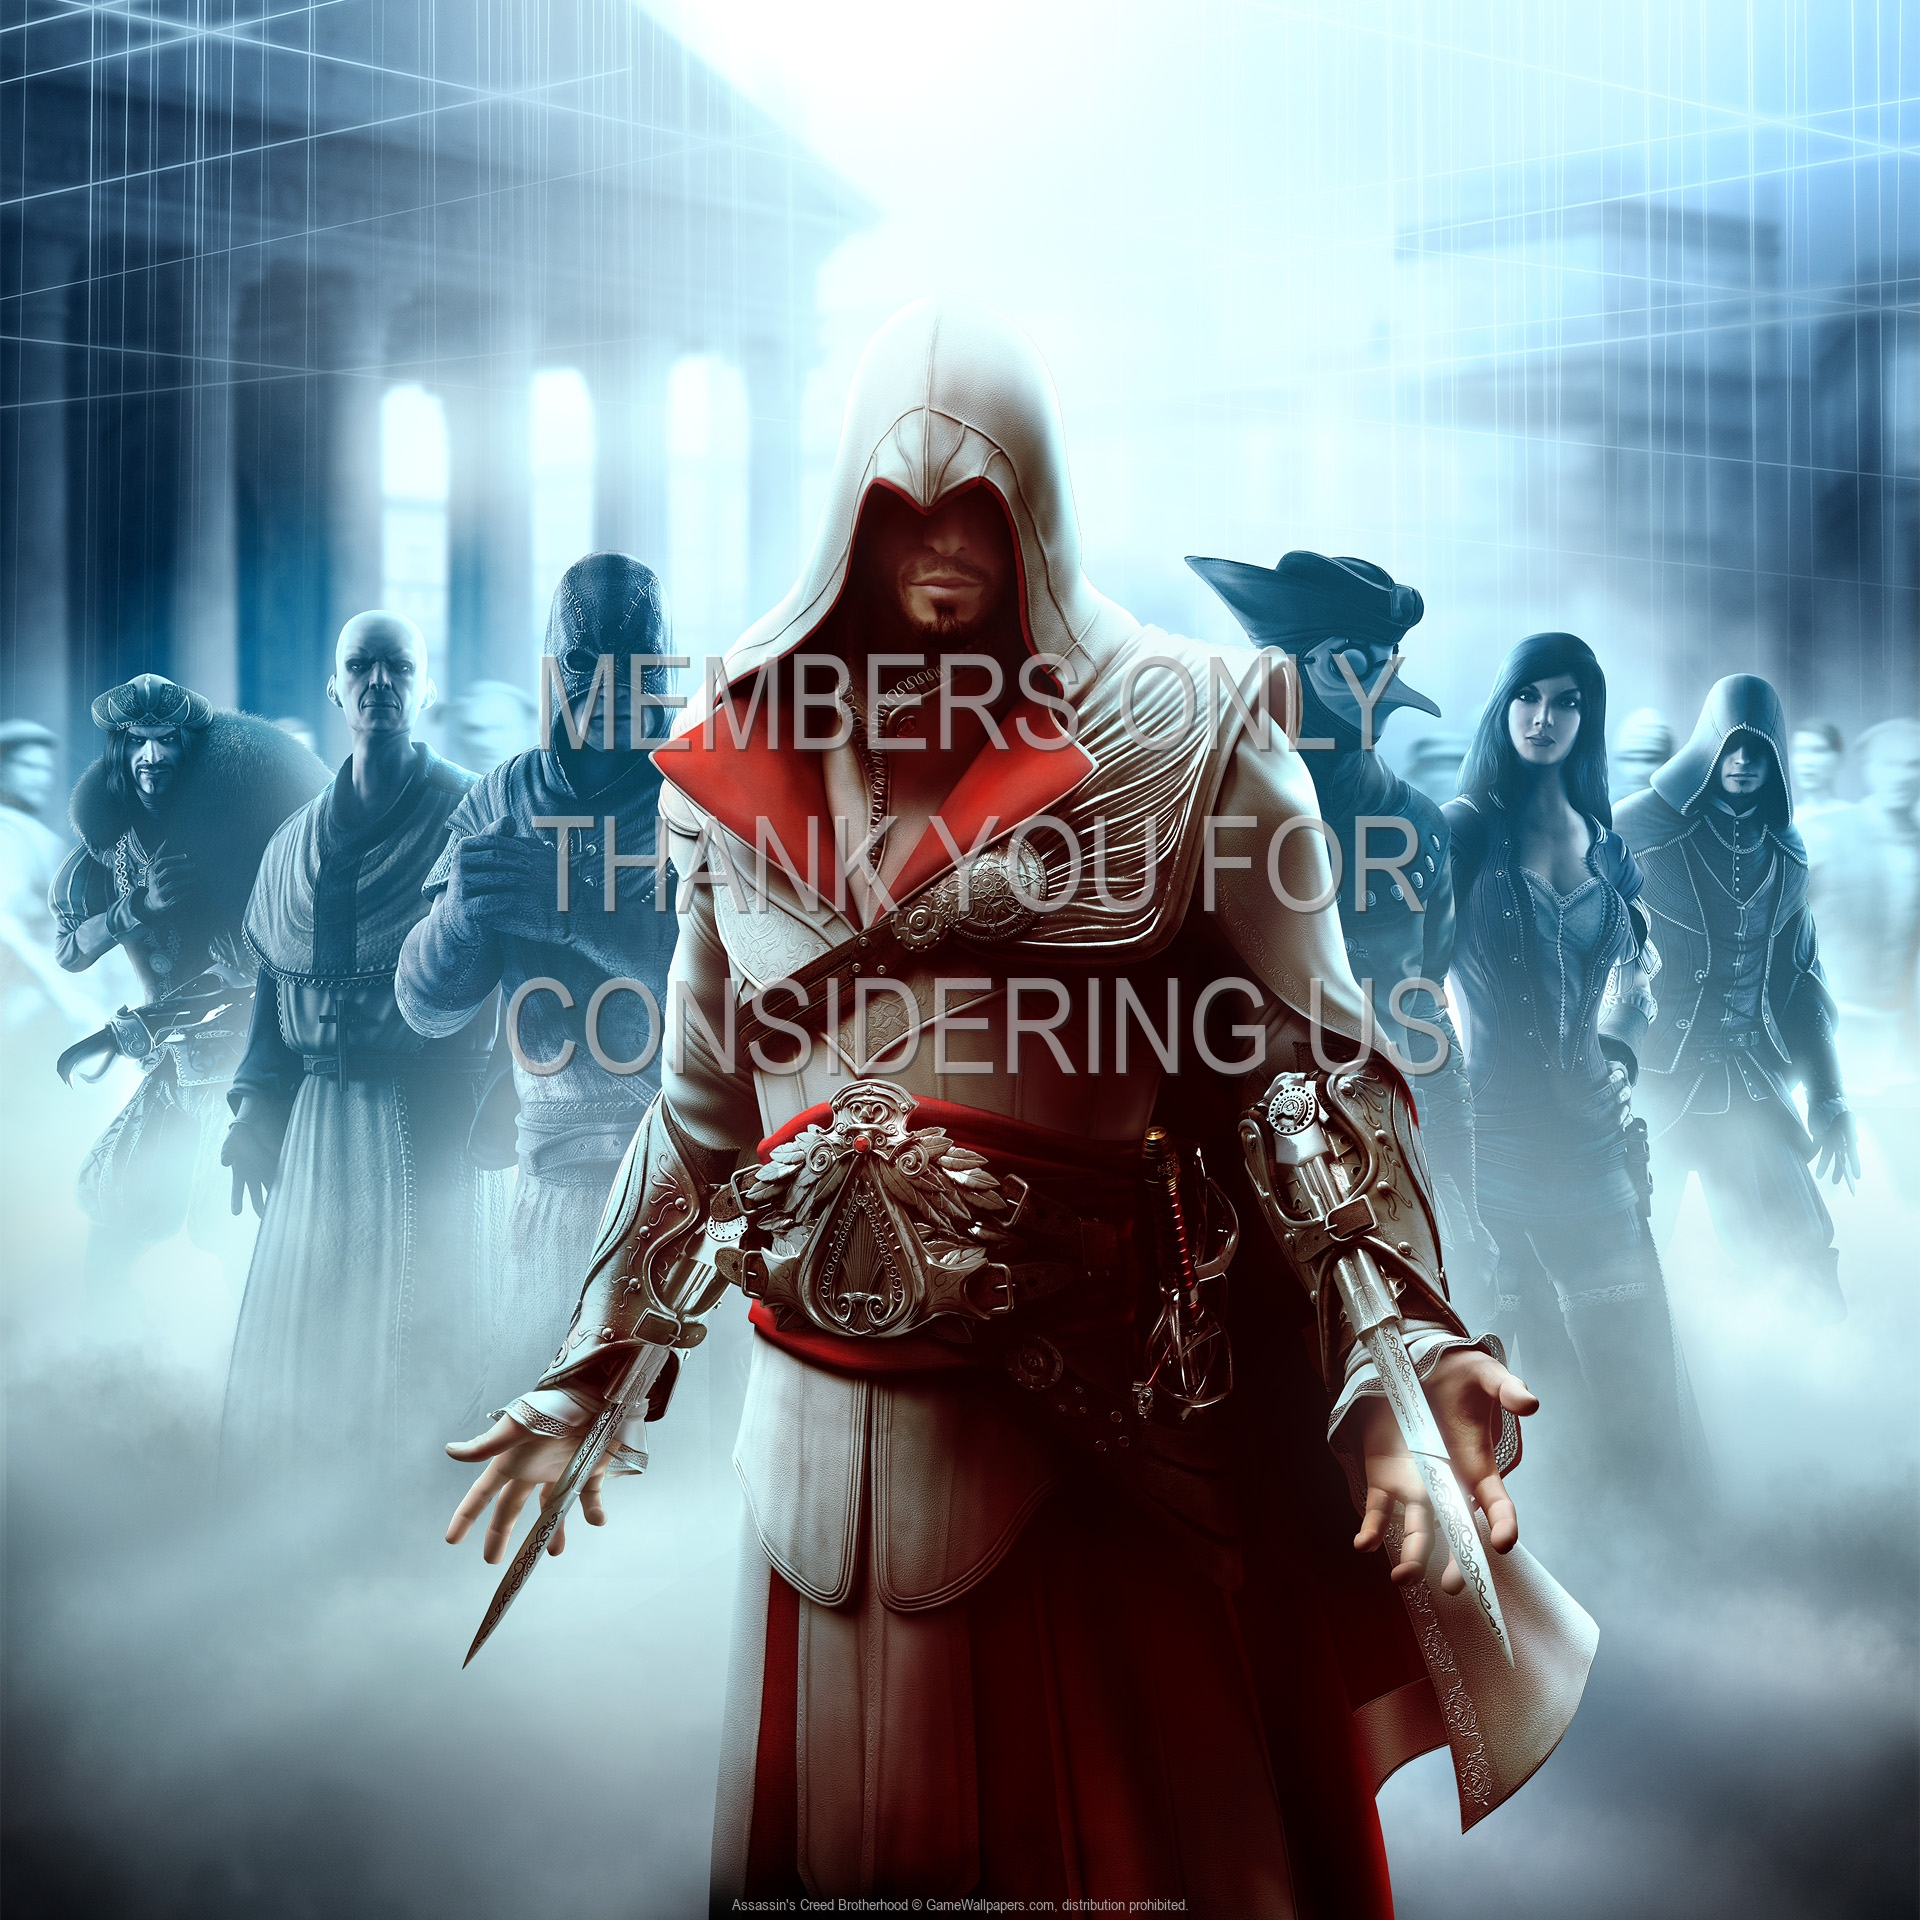 Assassin's Creed: Brotherhood 1920x1080 Mobiele achtergrond 01